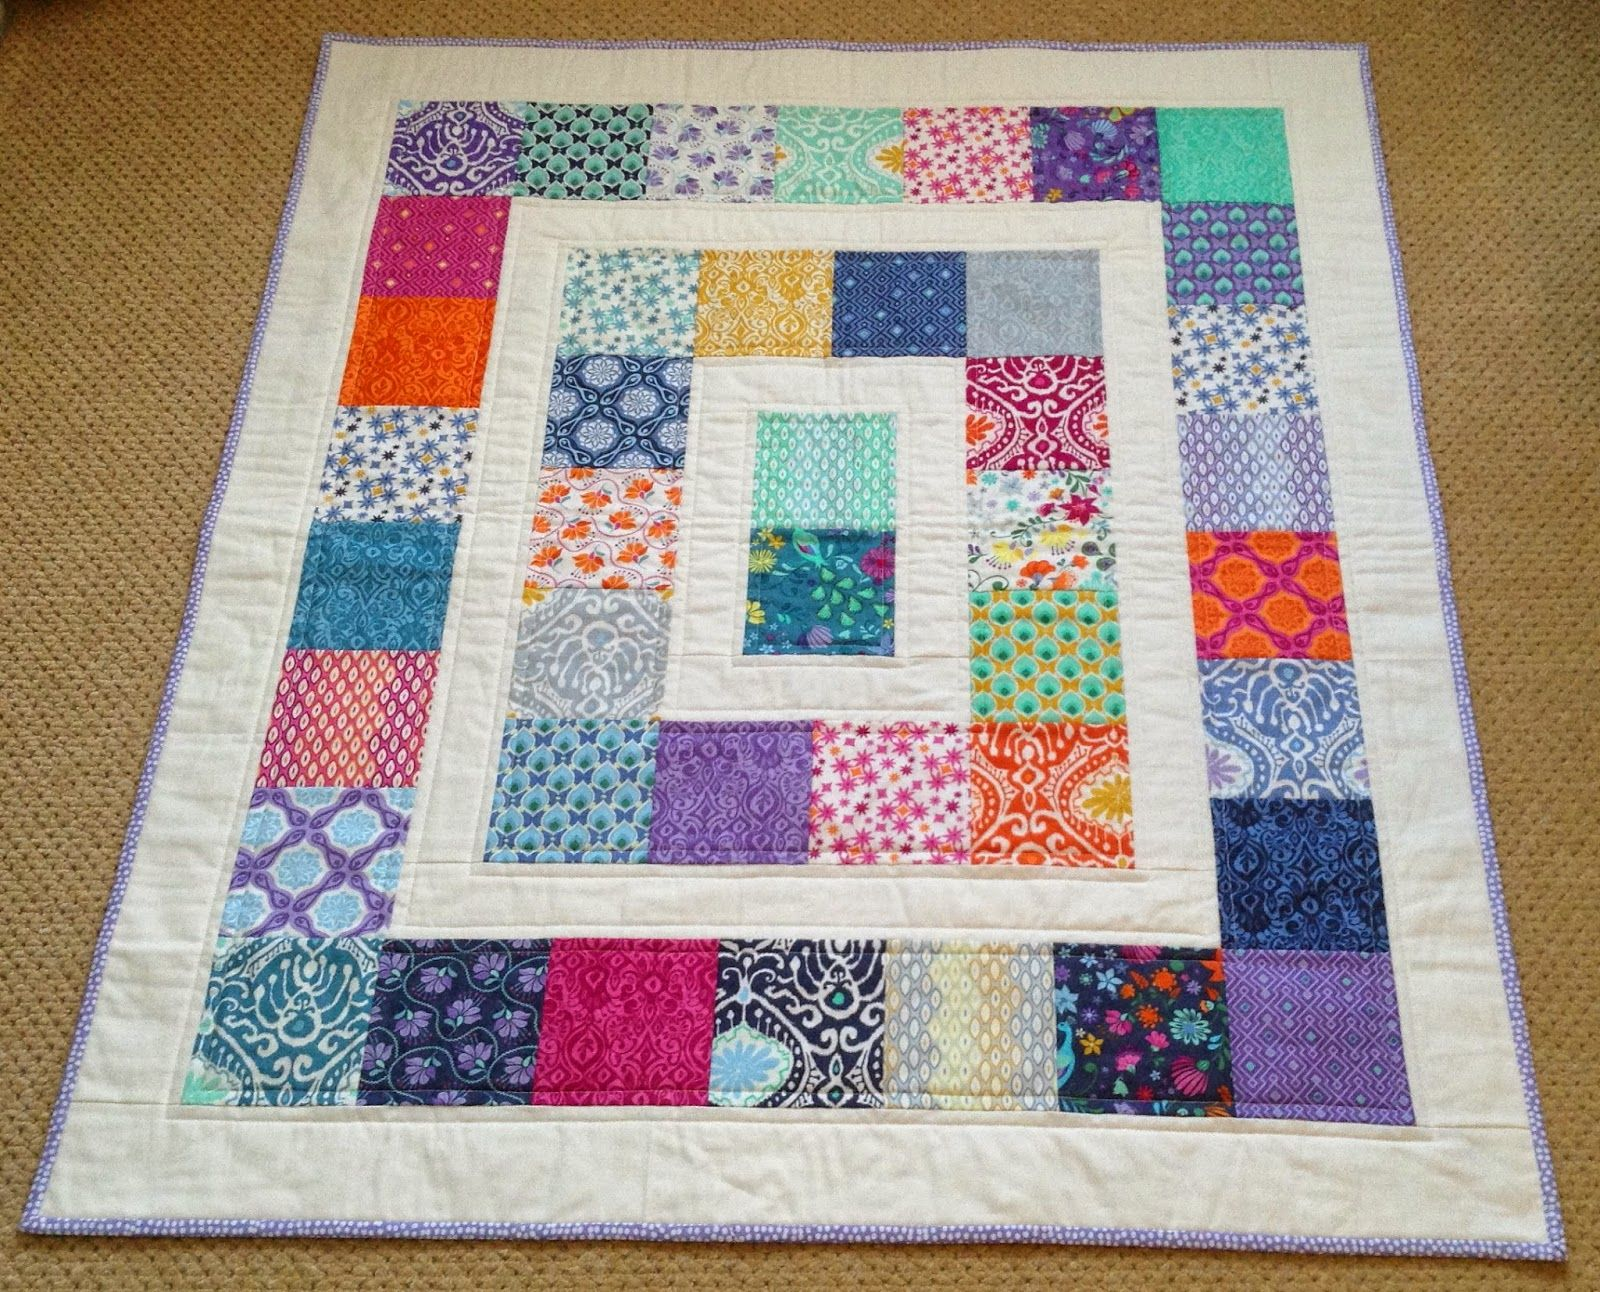 Sew Me Charm Pack Quilt Charm Pack Quilts Jellyroll